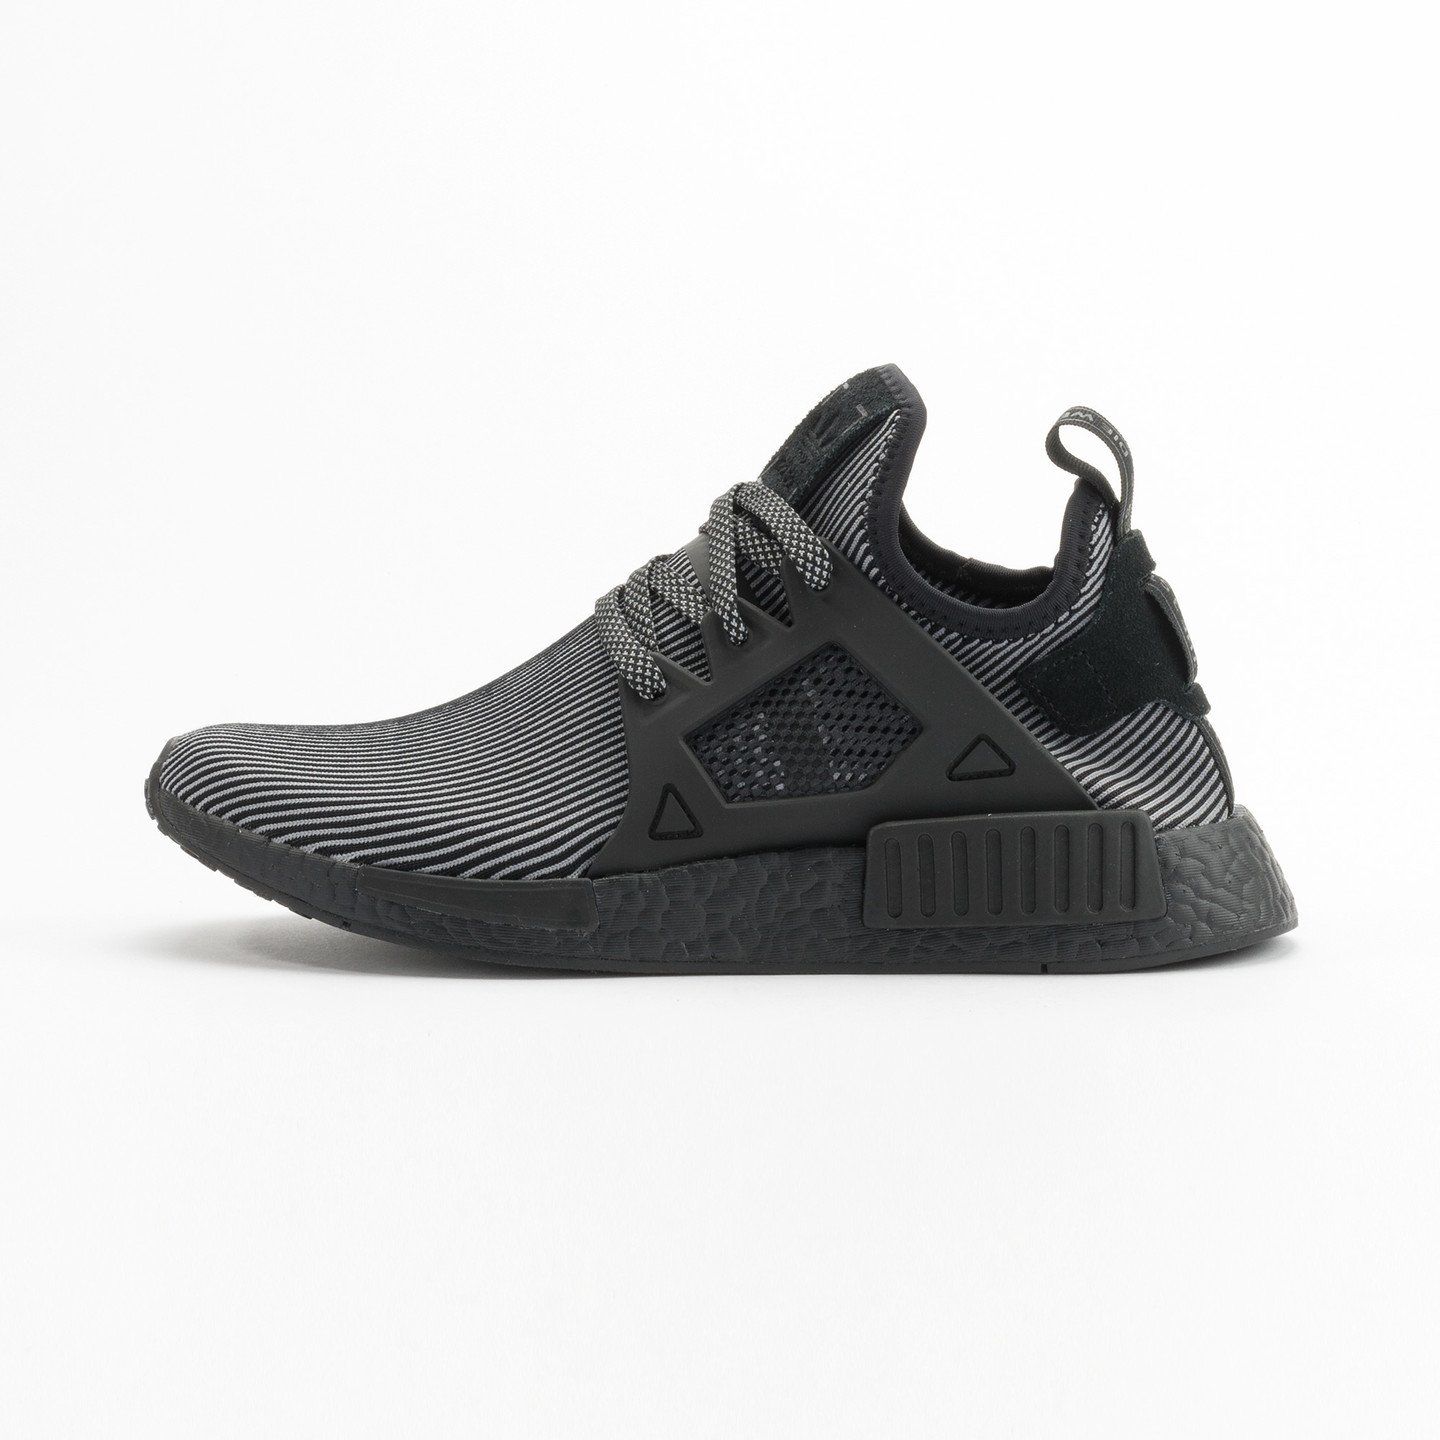 Adidas NMD XR1 Primeknit Core Black / Core Black / Running White S32211-40.66